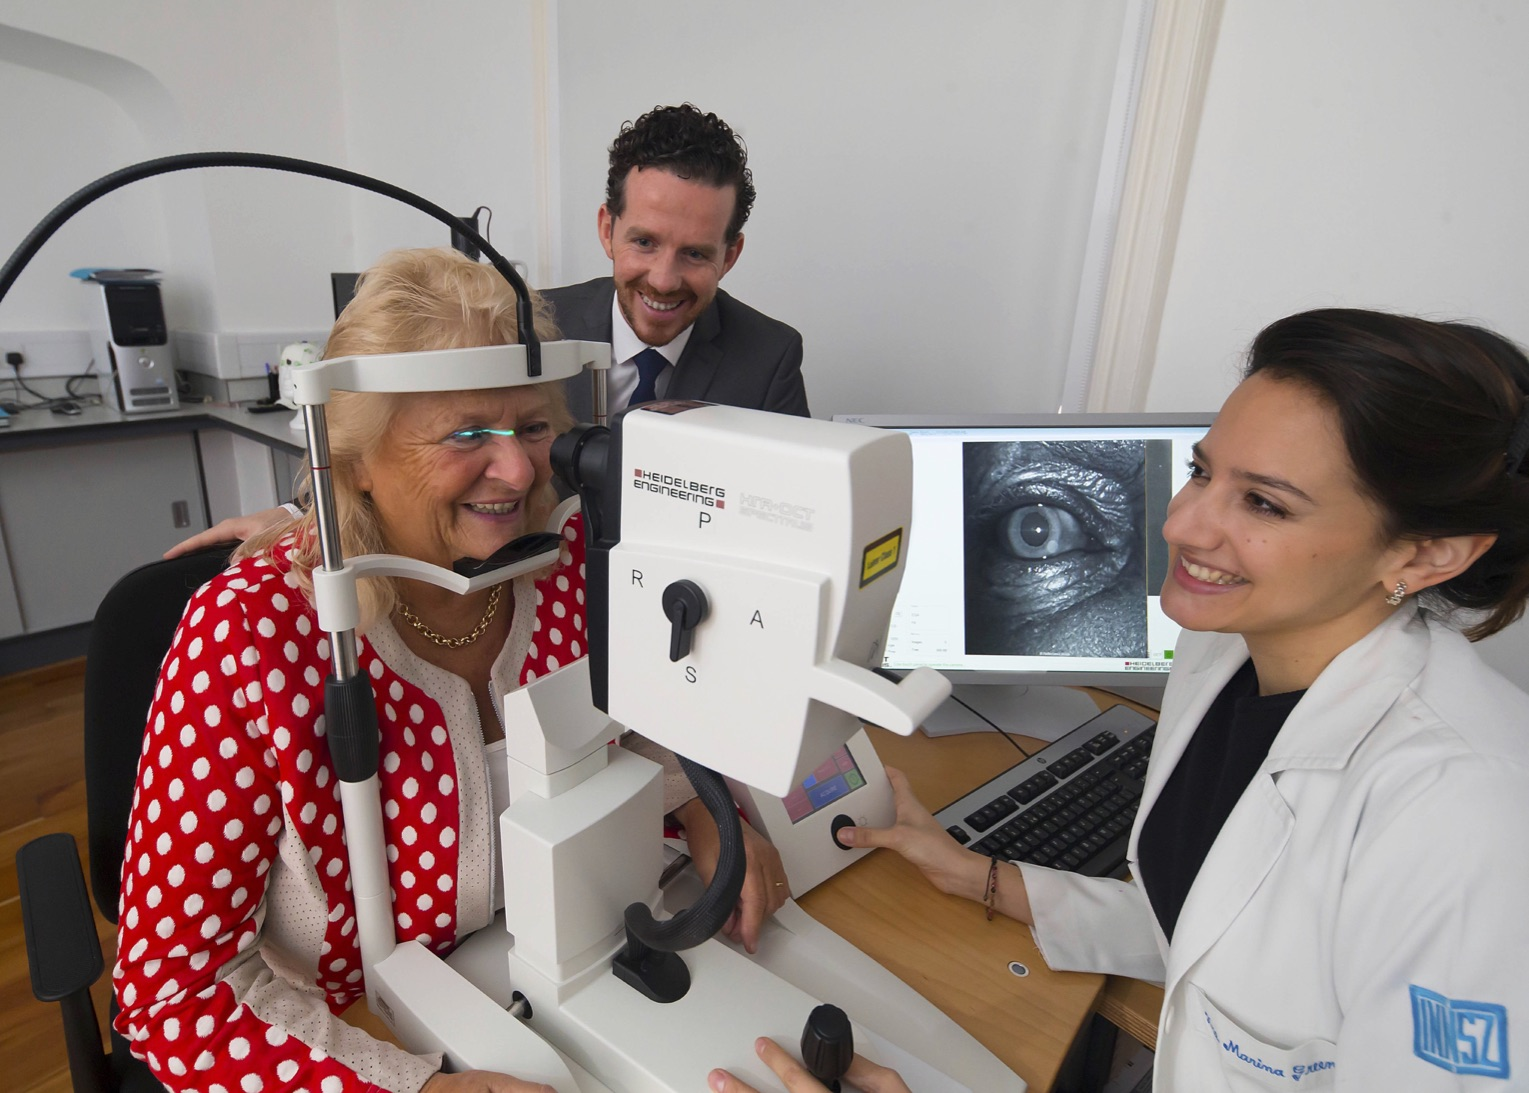 Dr Marina Green-Gomez and Prof John M. Nolan, from the Nutrition Research Centre Ireland, School of Health Science, Waterford Institute of Technology in Ireland during a patient examination with the investigational SPECTRALIS Macular Pigment Optical Volume* (MPOV).